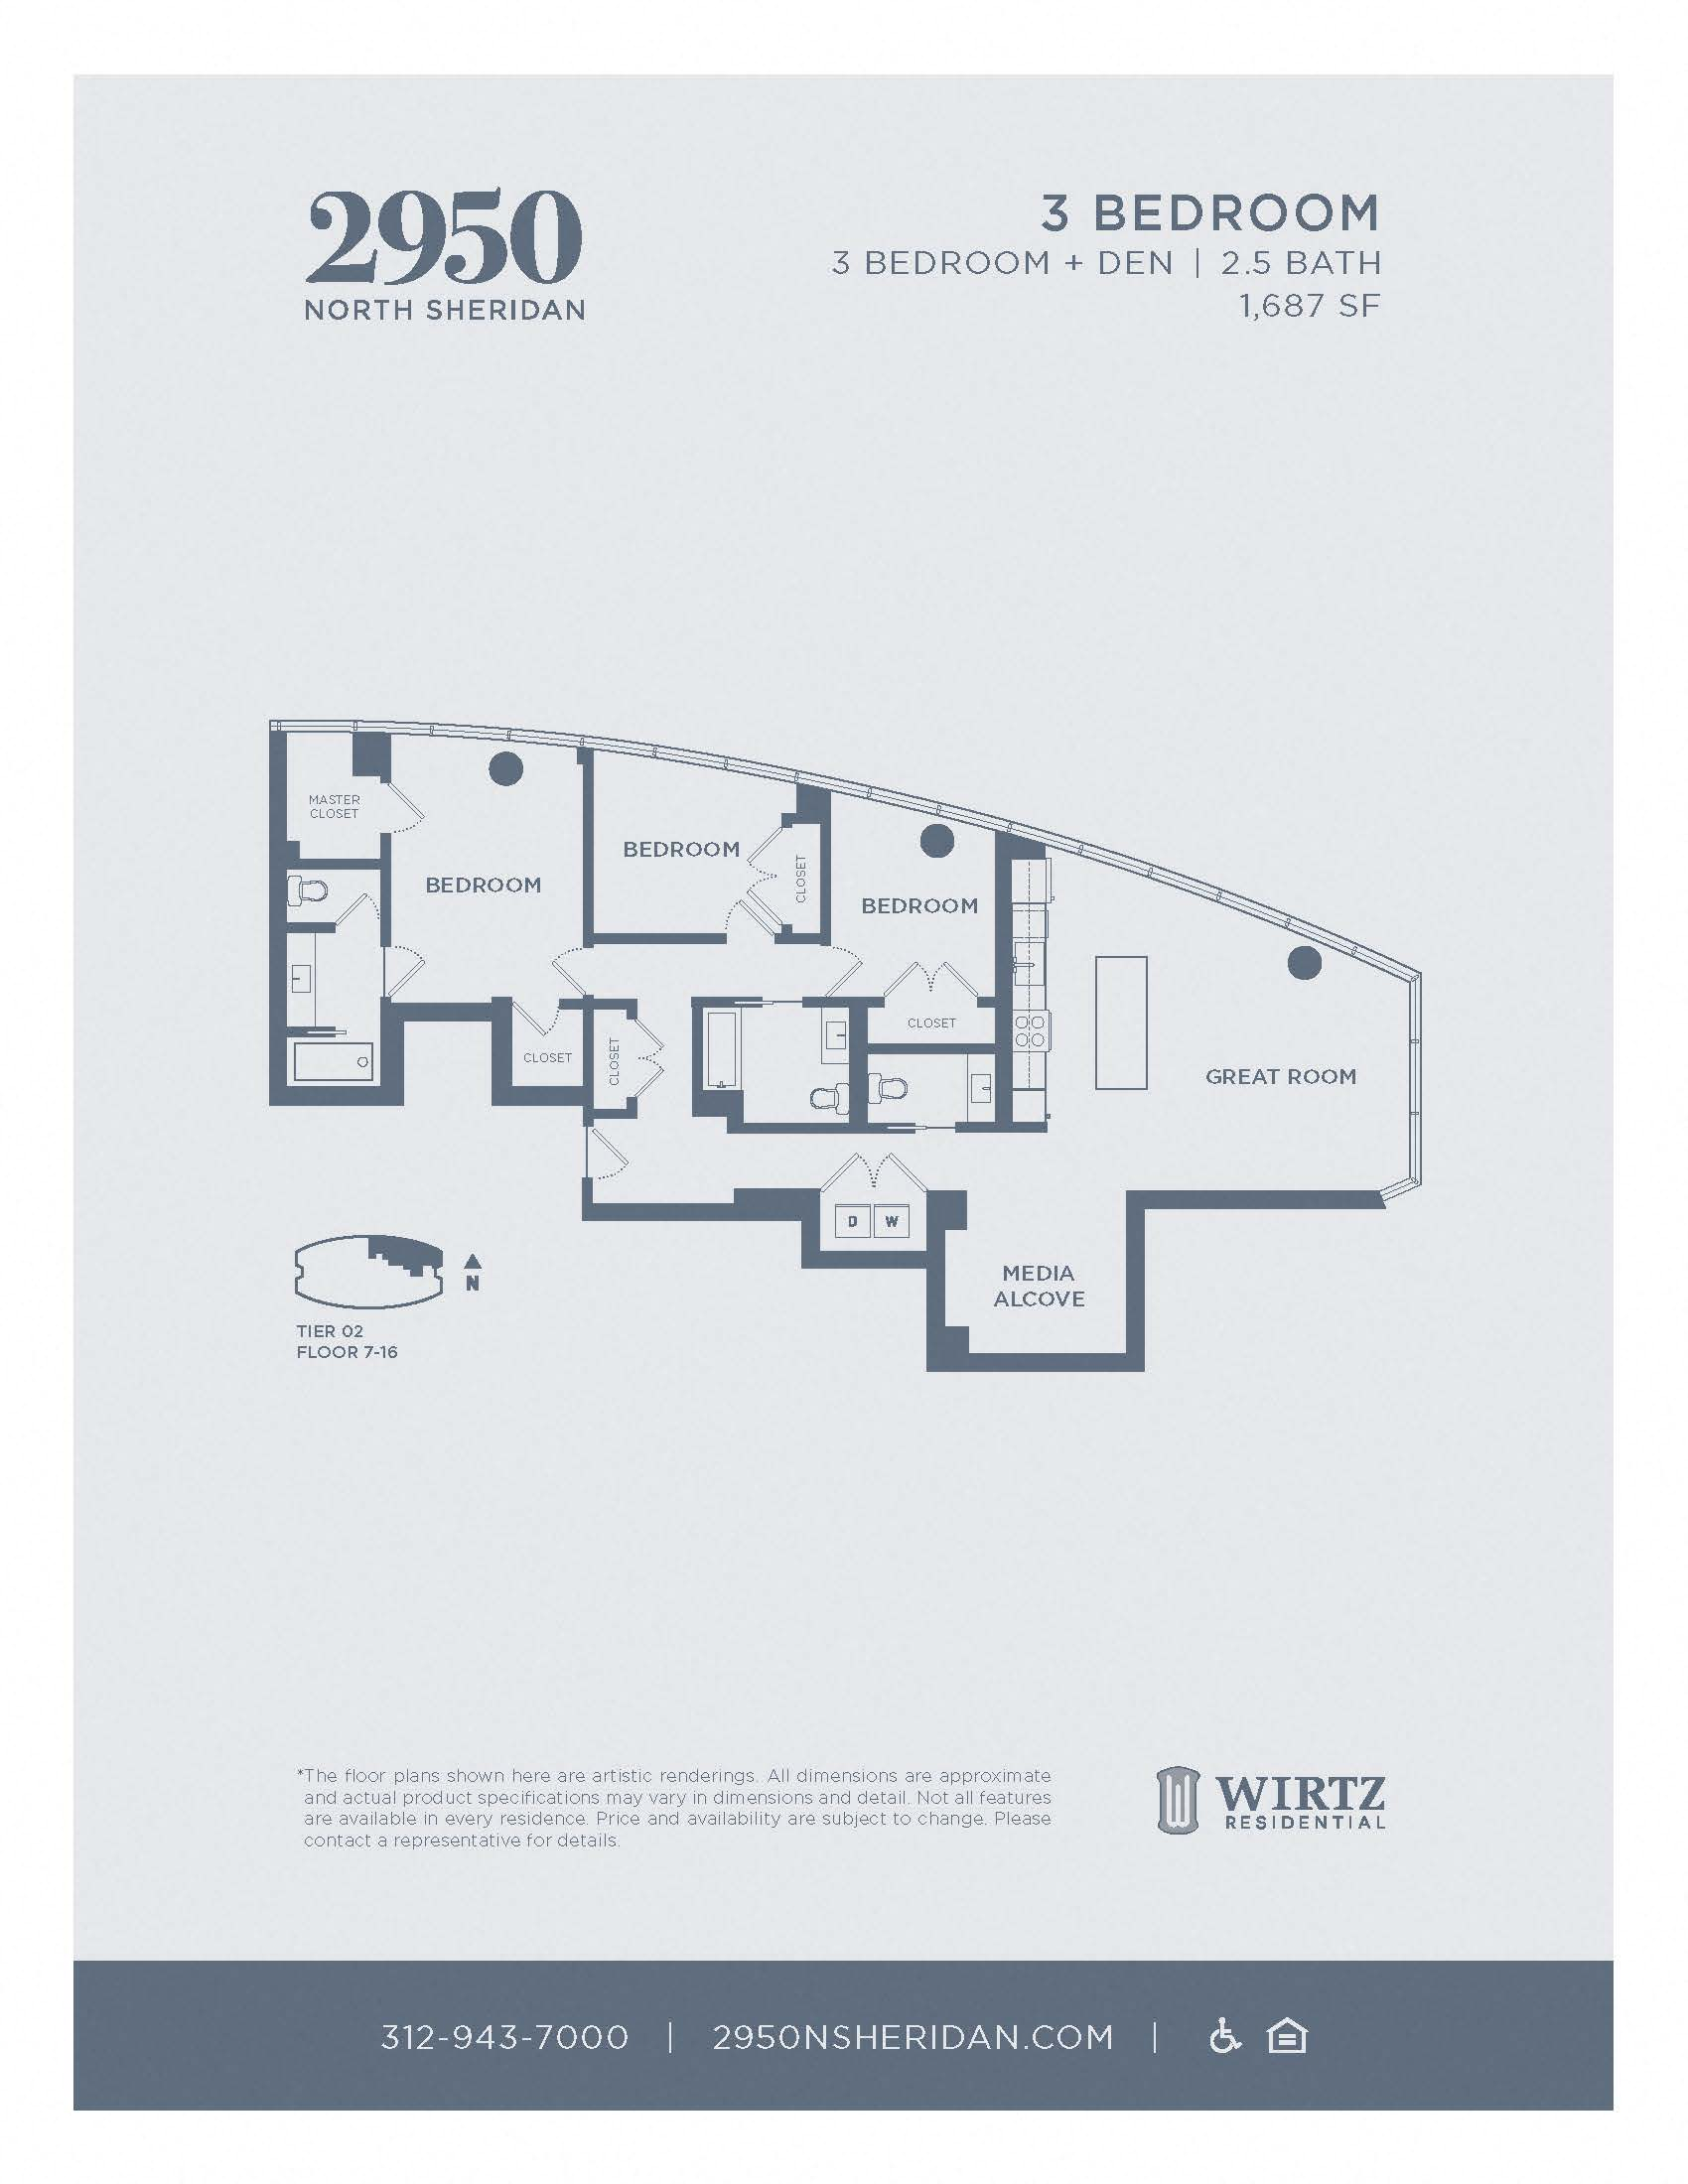 3 Bed 2.5 Bath + Den Tier 02 FL 7 - 16